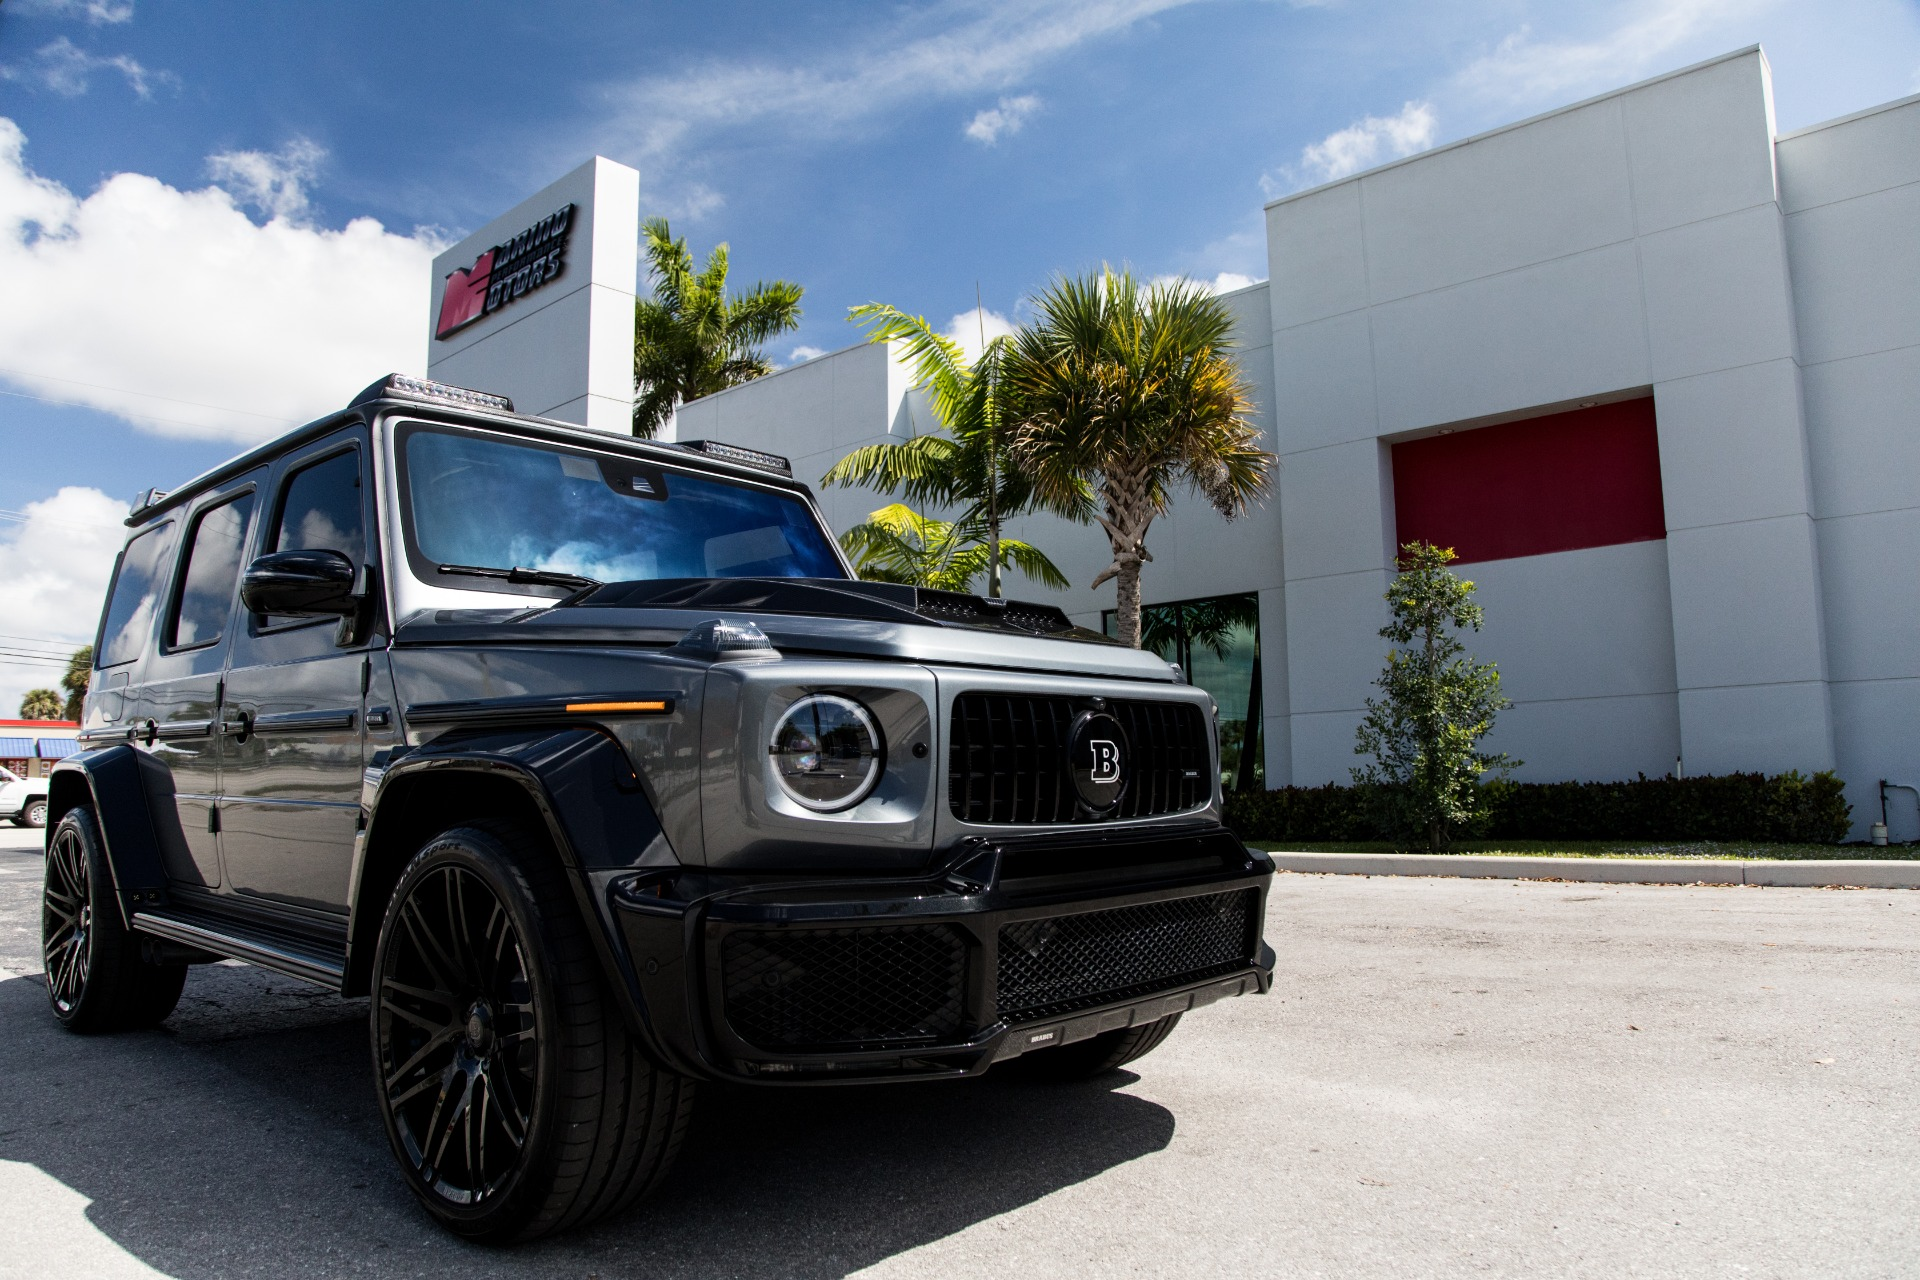 Used 2019 Mercedes Benz G Class Amg G 63 Brabus For Sale 249 900 Marino Performance Motors Stock 323158